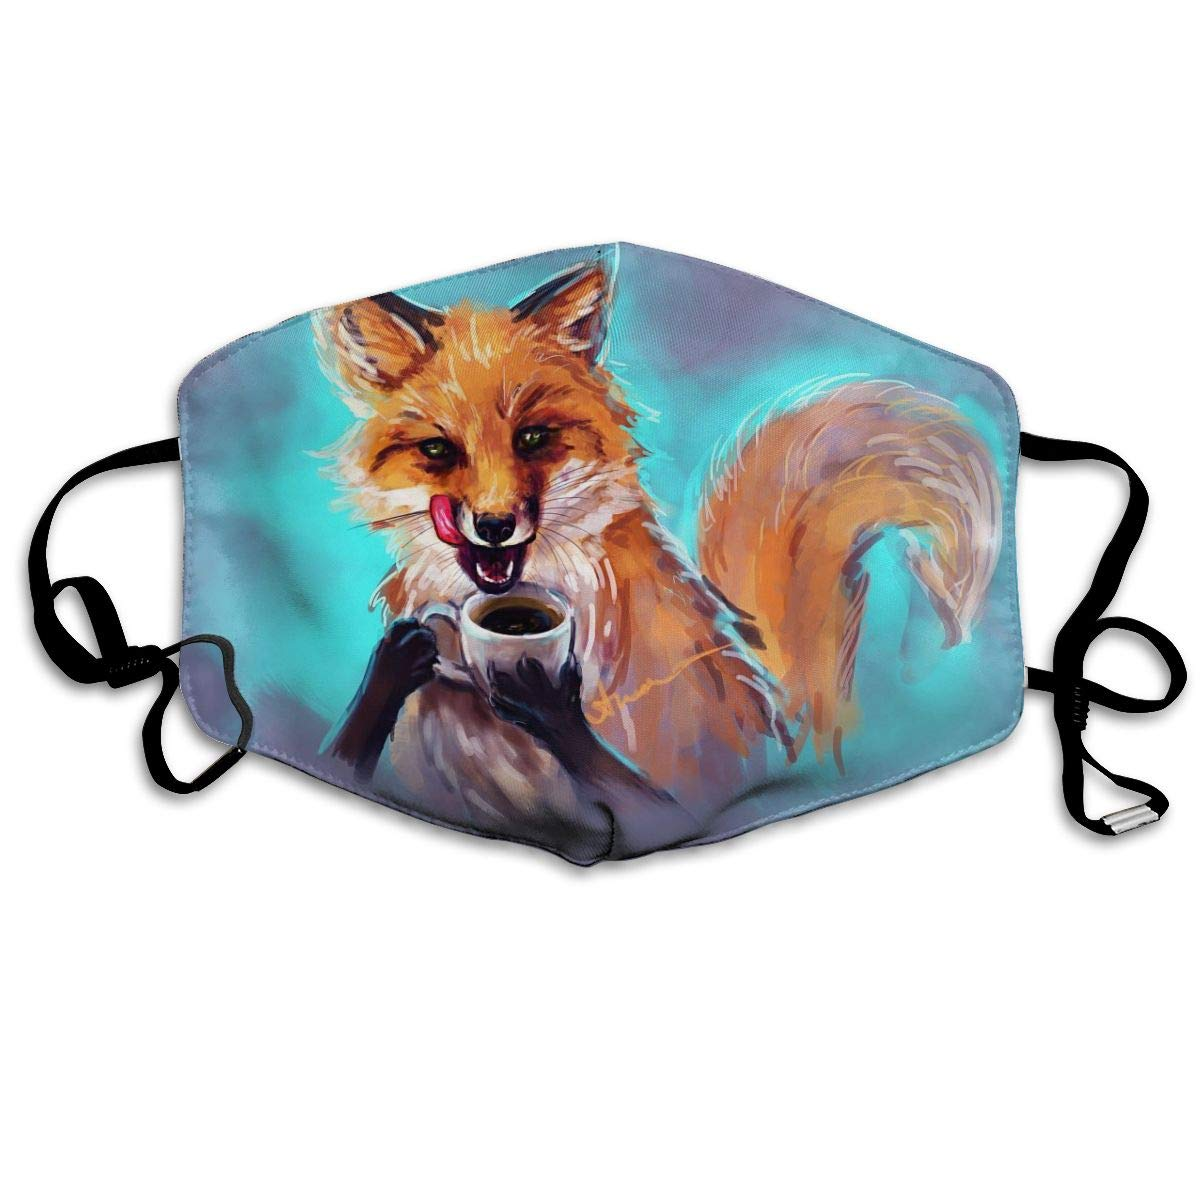 Mouth Mask For Daily Dress Up, Fox With Coffee Anti-dust Mouth-Muffle, Washable Reusable Holiday Half Face Masks For Mens And